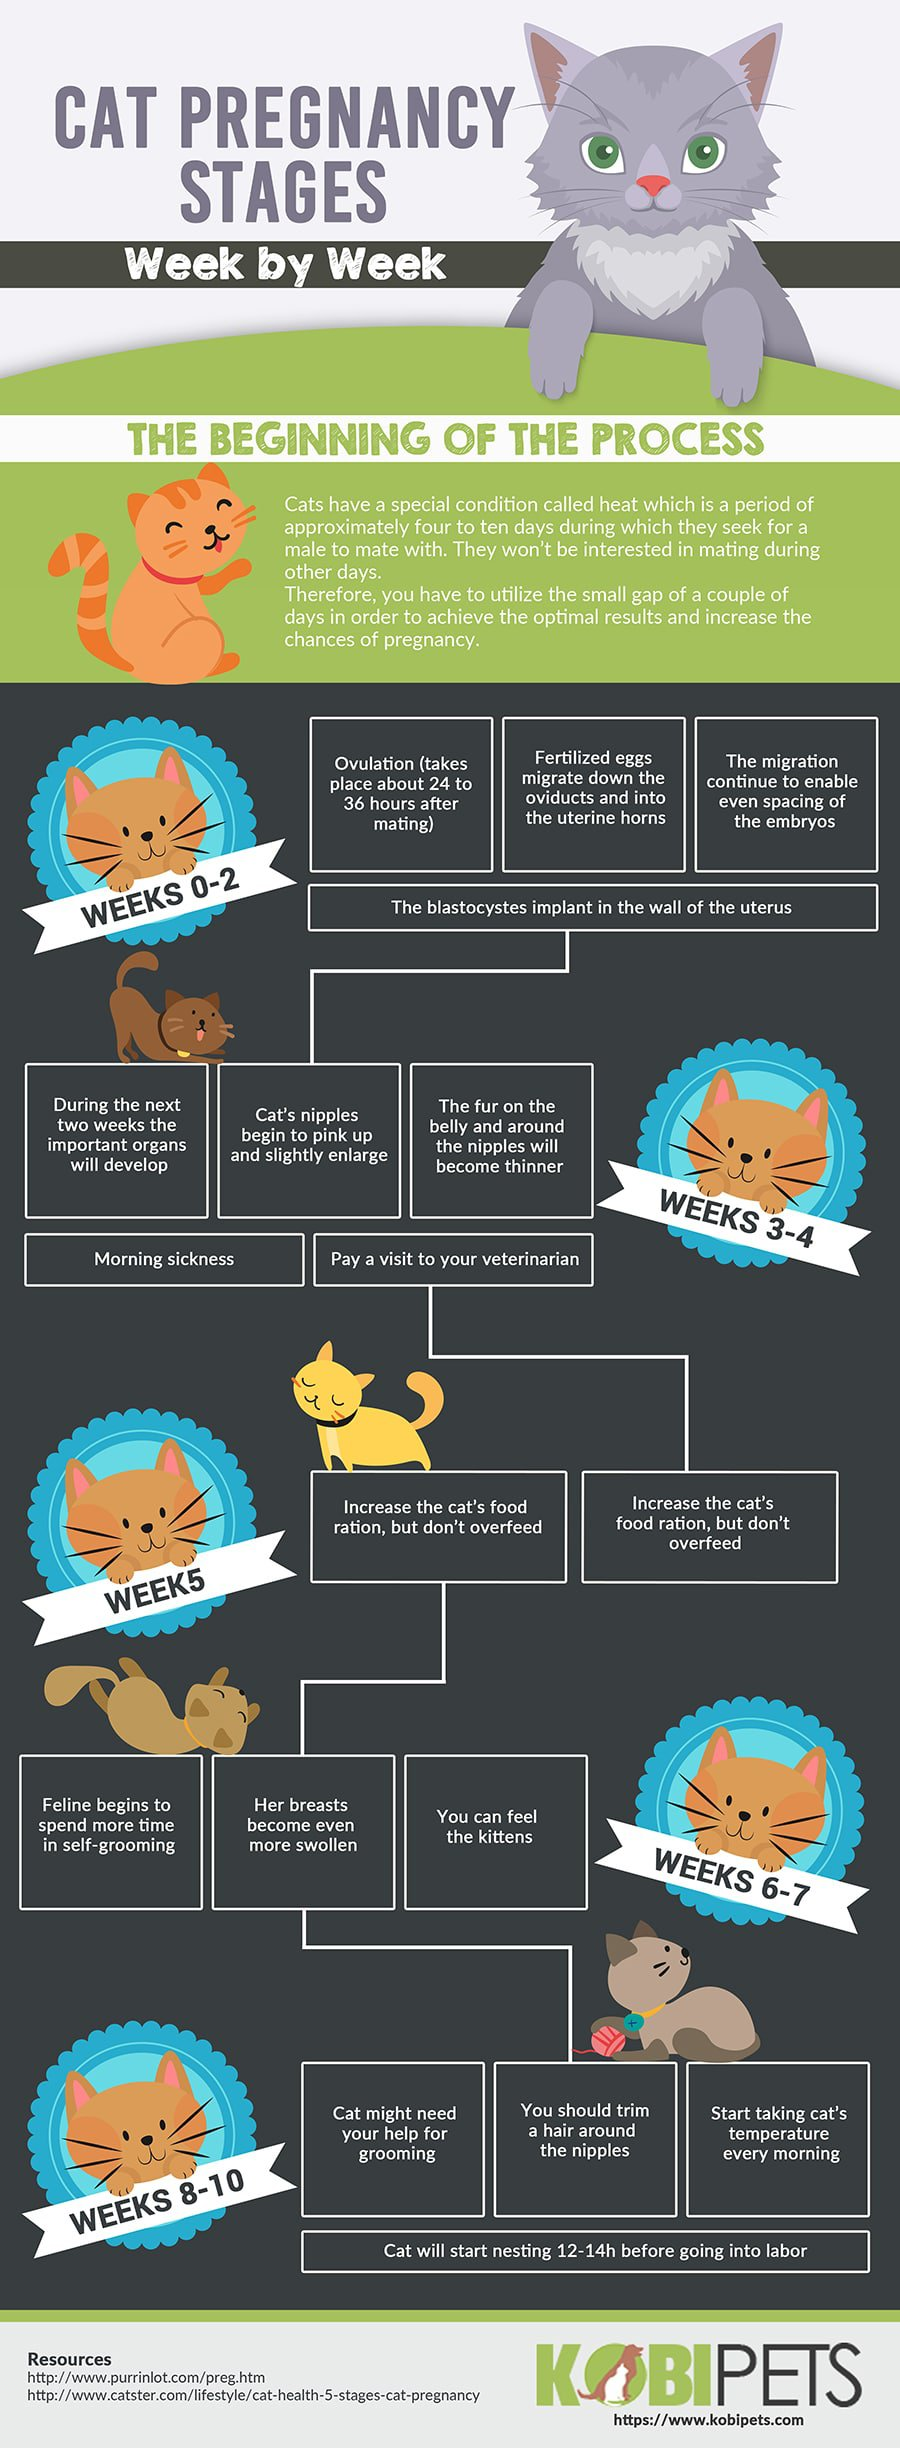 cat pregnancy timeline infographic